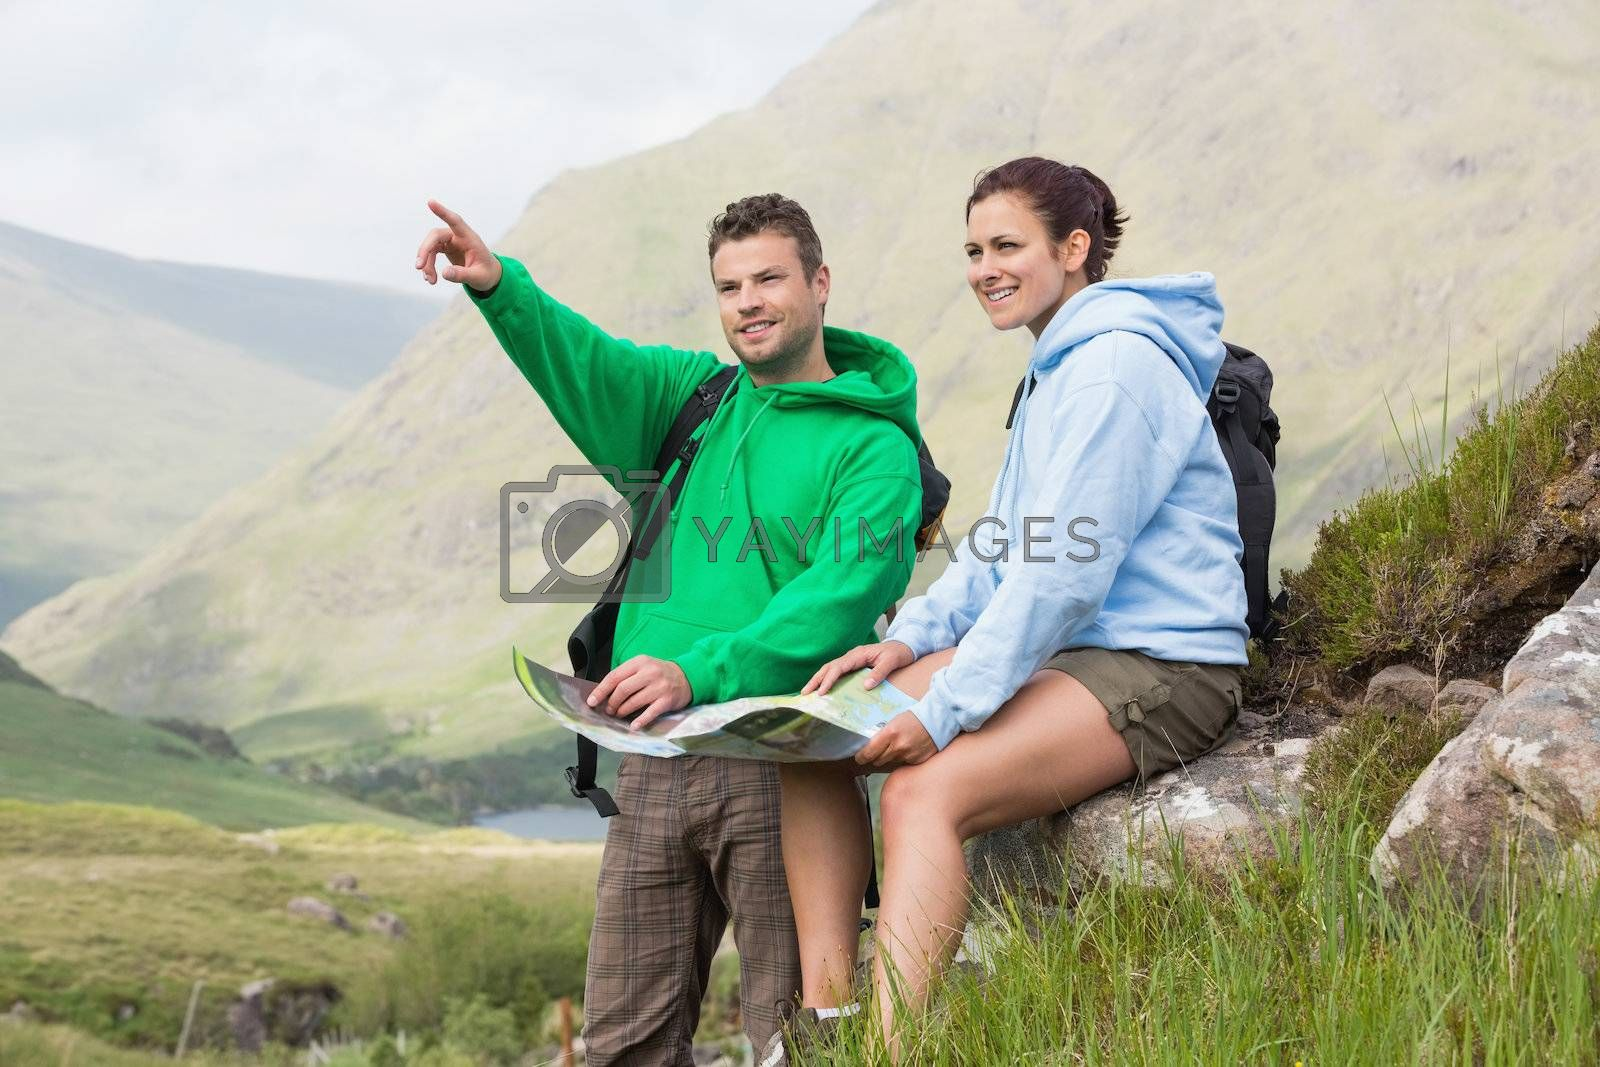 Couple resting after hiking uphill and consulting map by Wavebreakmedia